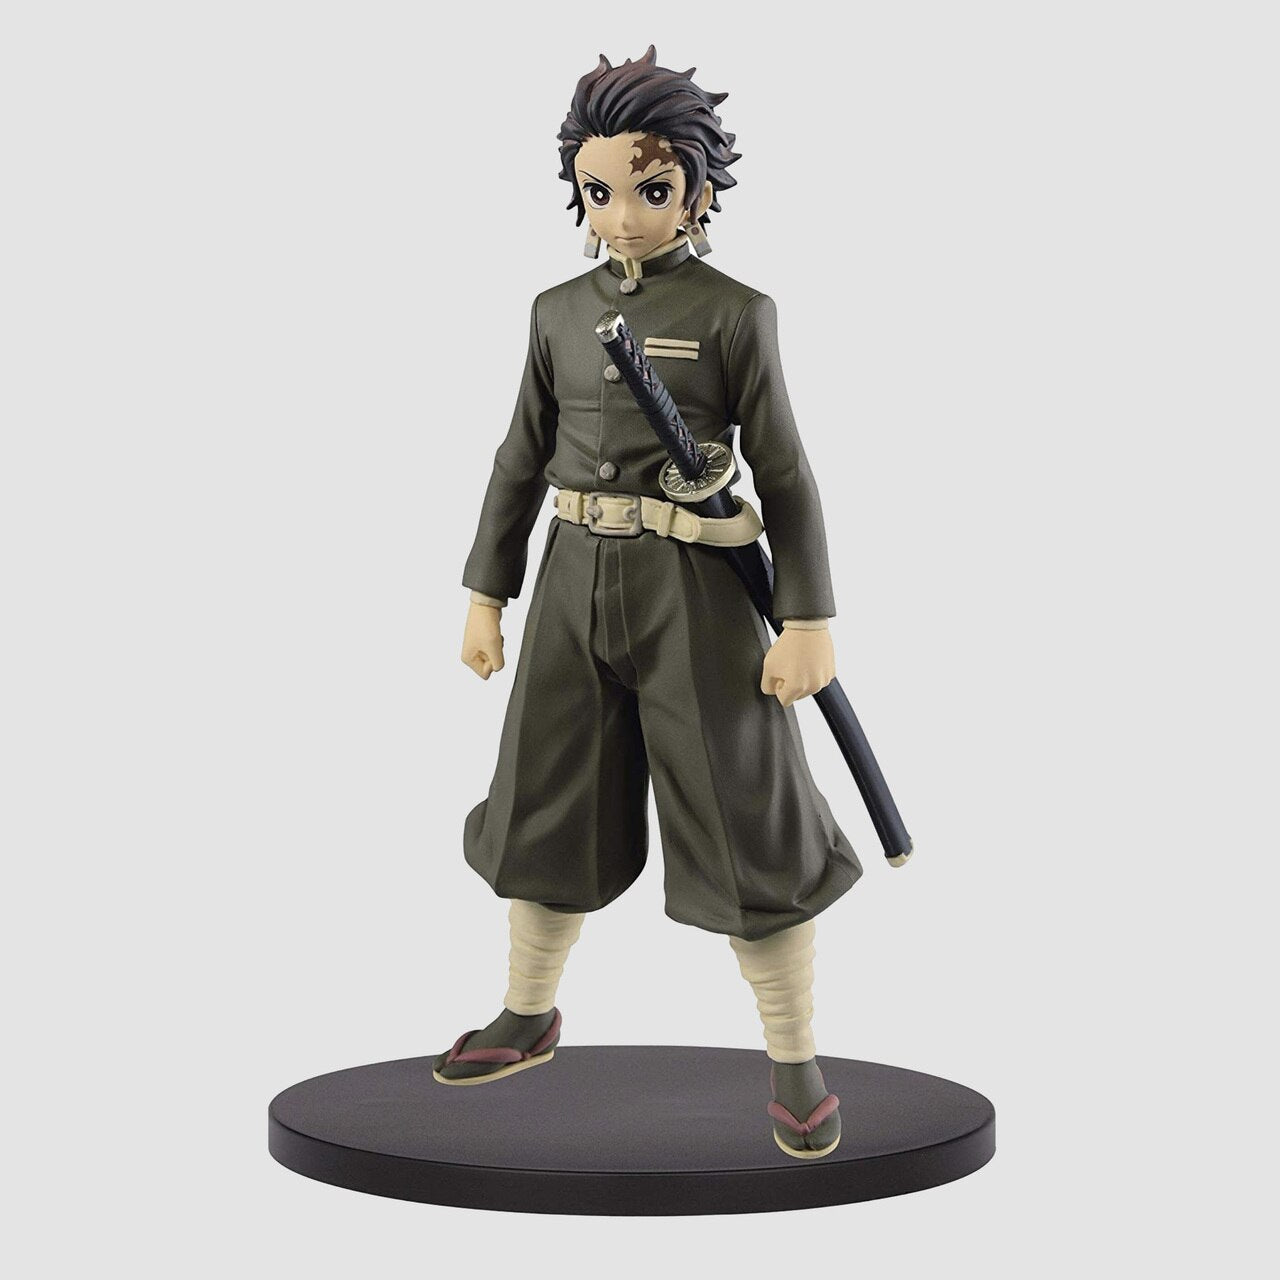 Banpresto x Bandai: Demon Slayer - Kimetsu No Yaiba Vol. 7 Tanjiro Kamado Figure